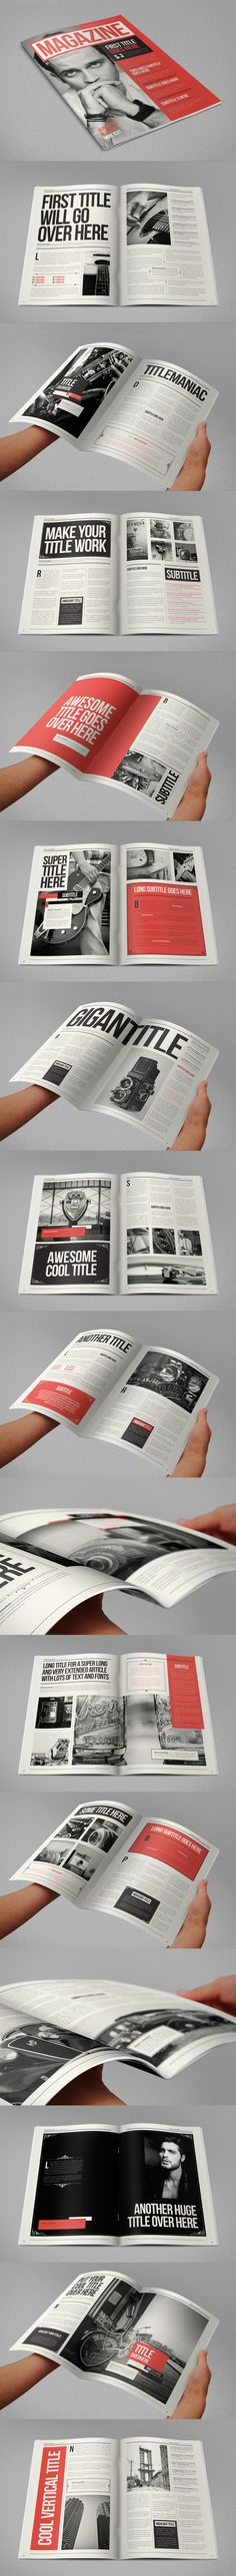 Layout design / Retro Vintage Magazine on Editorial Design Served by Michelle M Gutierrez Poster Design, Graphic Design Layouts, Web Design, Page Design, Brochure Design, Book Design, Print Design, Editorial Design, Editorial Layout